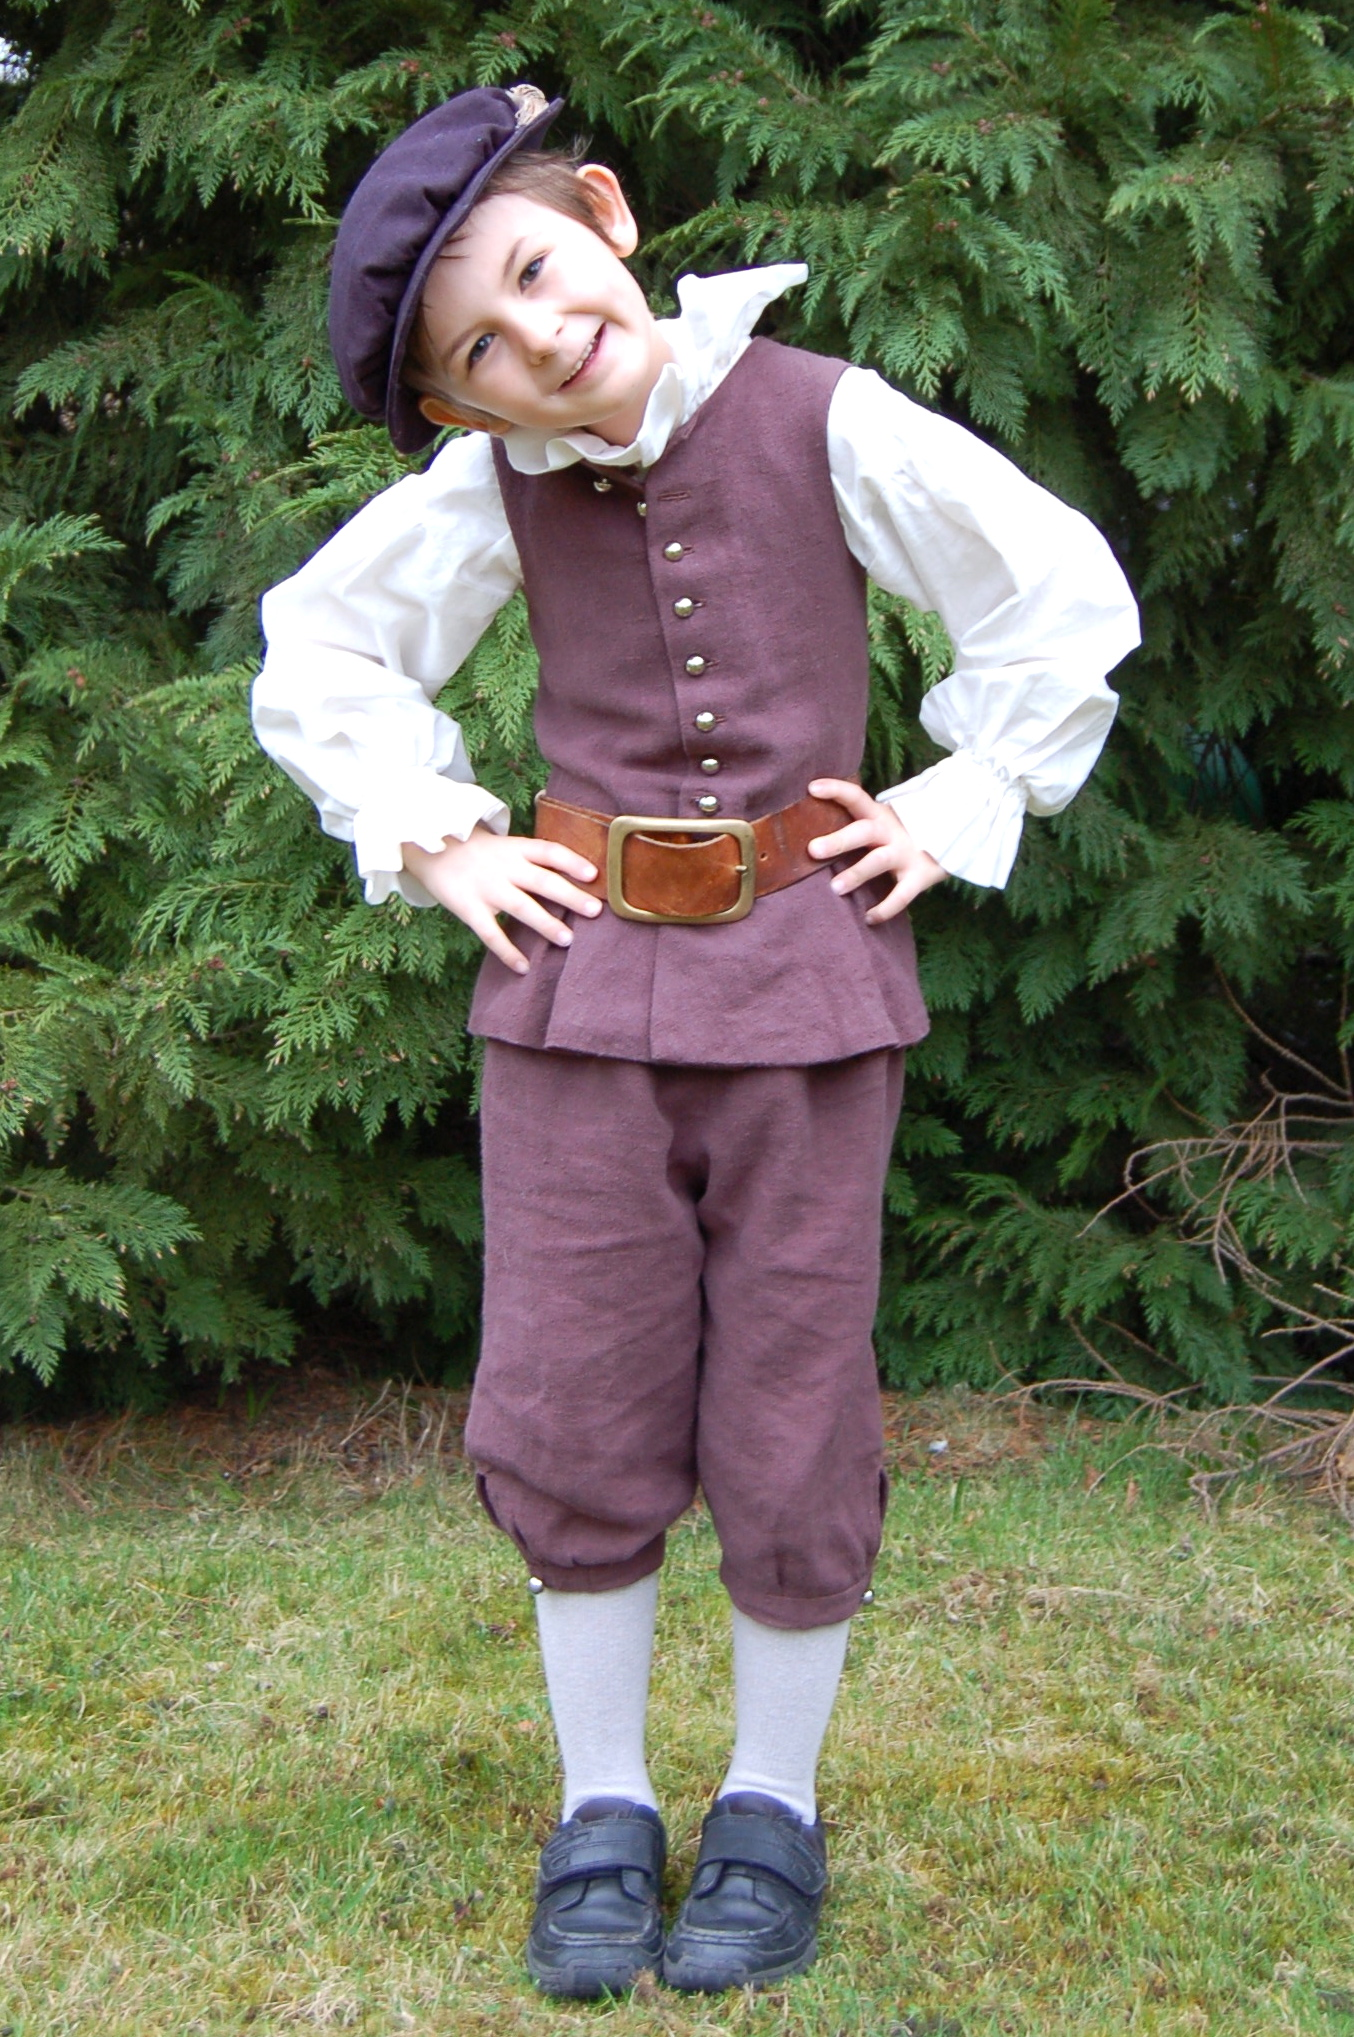 Tudor Boy Revisitedu2026(and other costumes) u2013 The Linen Cat Blog